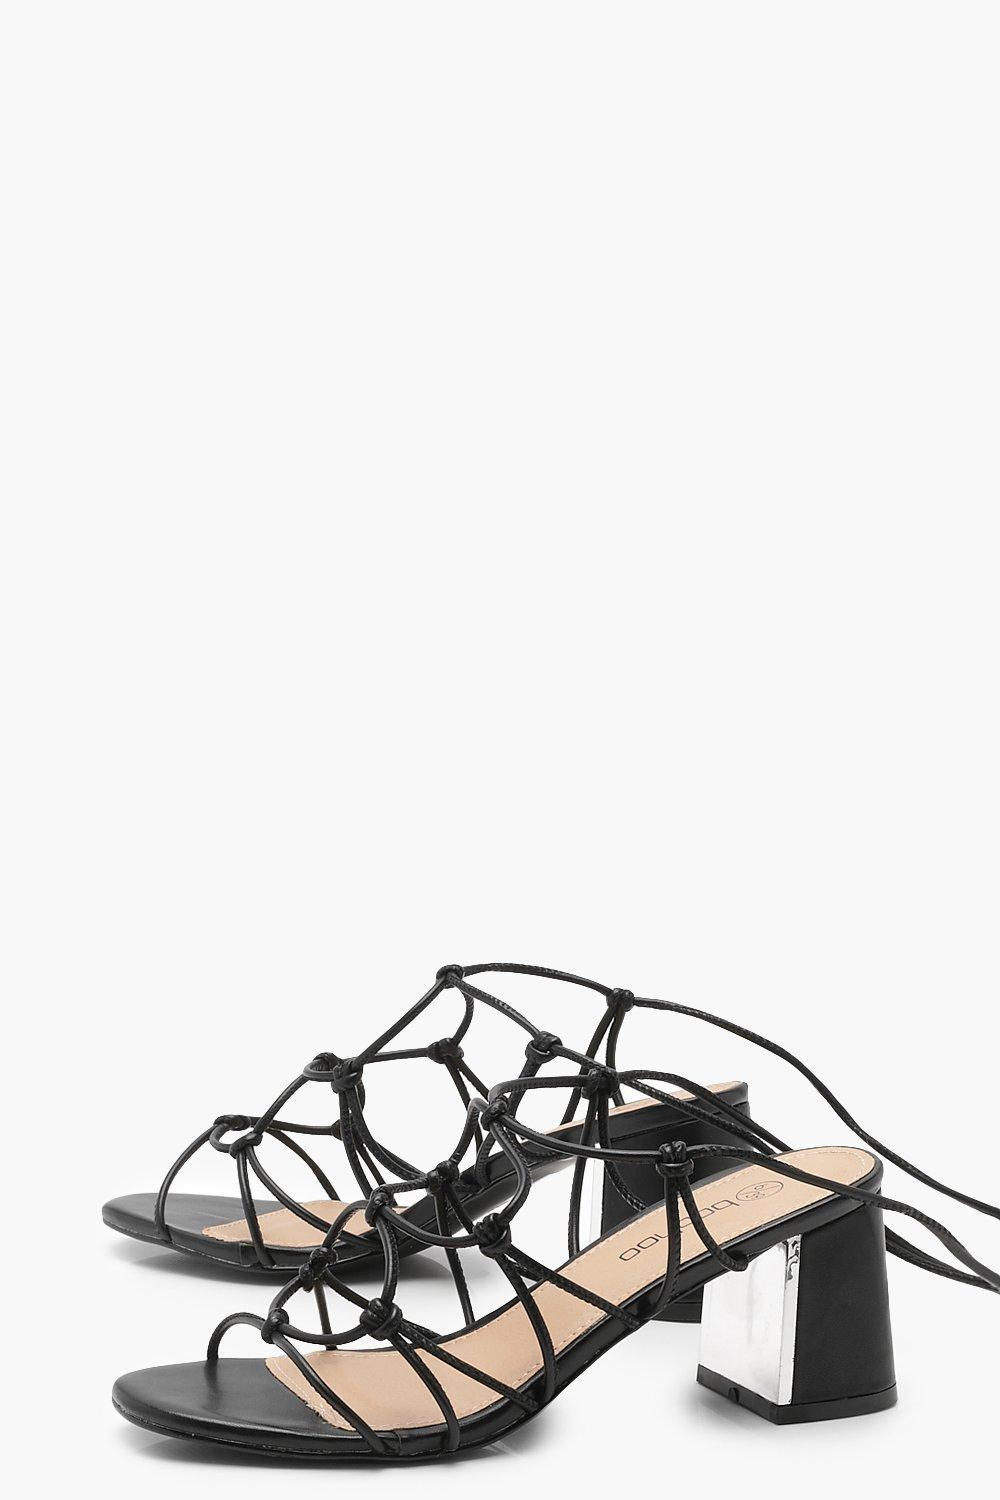 c5368ca0da9 Lyst - Boohoo Extra Wide Fit Cage Tie Up Gladiator Sandals in Black